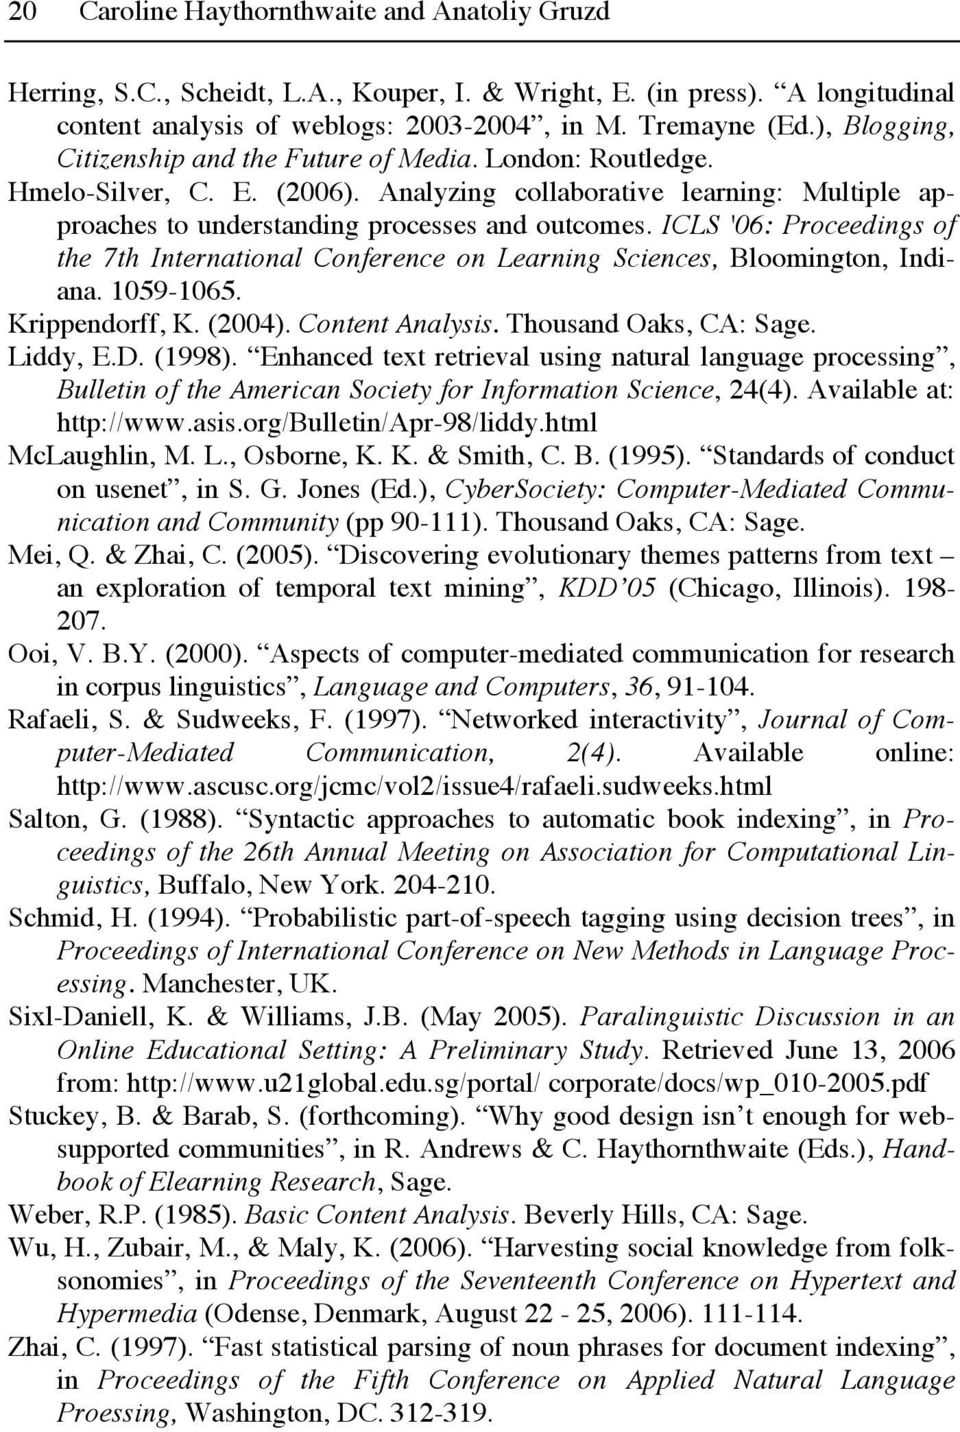 ICLS '06: Proceedings of the 7th International Conference on Learning Sciences, Bloomington, Indiana. 1059-1065. Krippendorff, K. (2004). Content Analysis. Thousand Oaks, CA: Sage. Liddy, E.D. (1998).